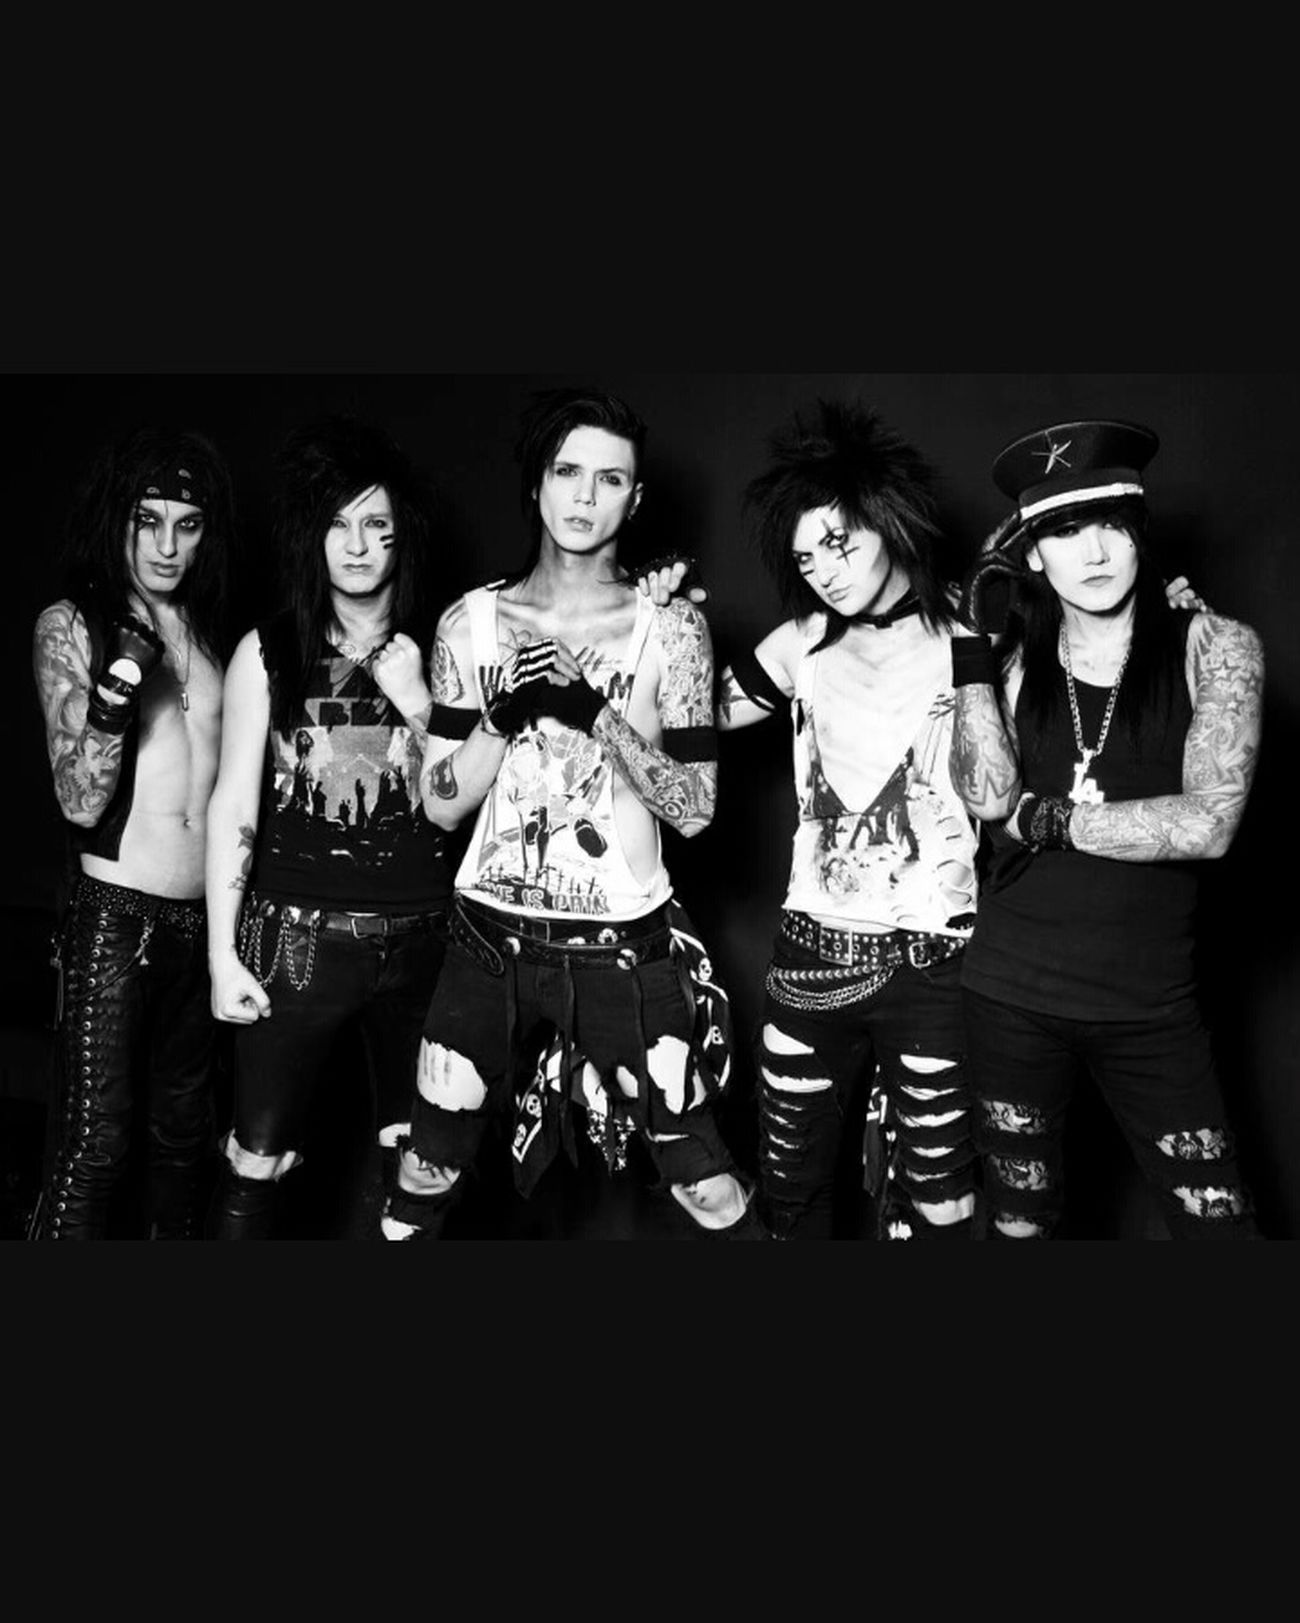 Thebest Photooftheday Picoftheday Blackandwhite Black & White Band BvB Bvbarmy BlackVeilBrides AndyBiersack Ashleypurdy Jinxx Listening To Music